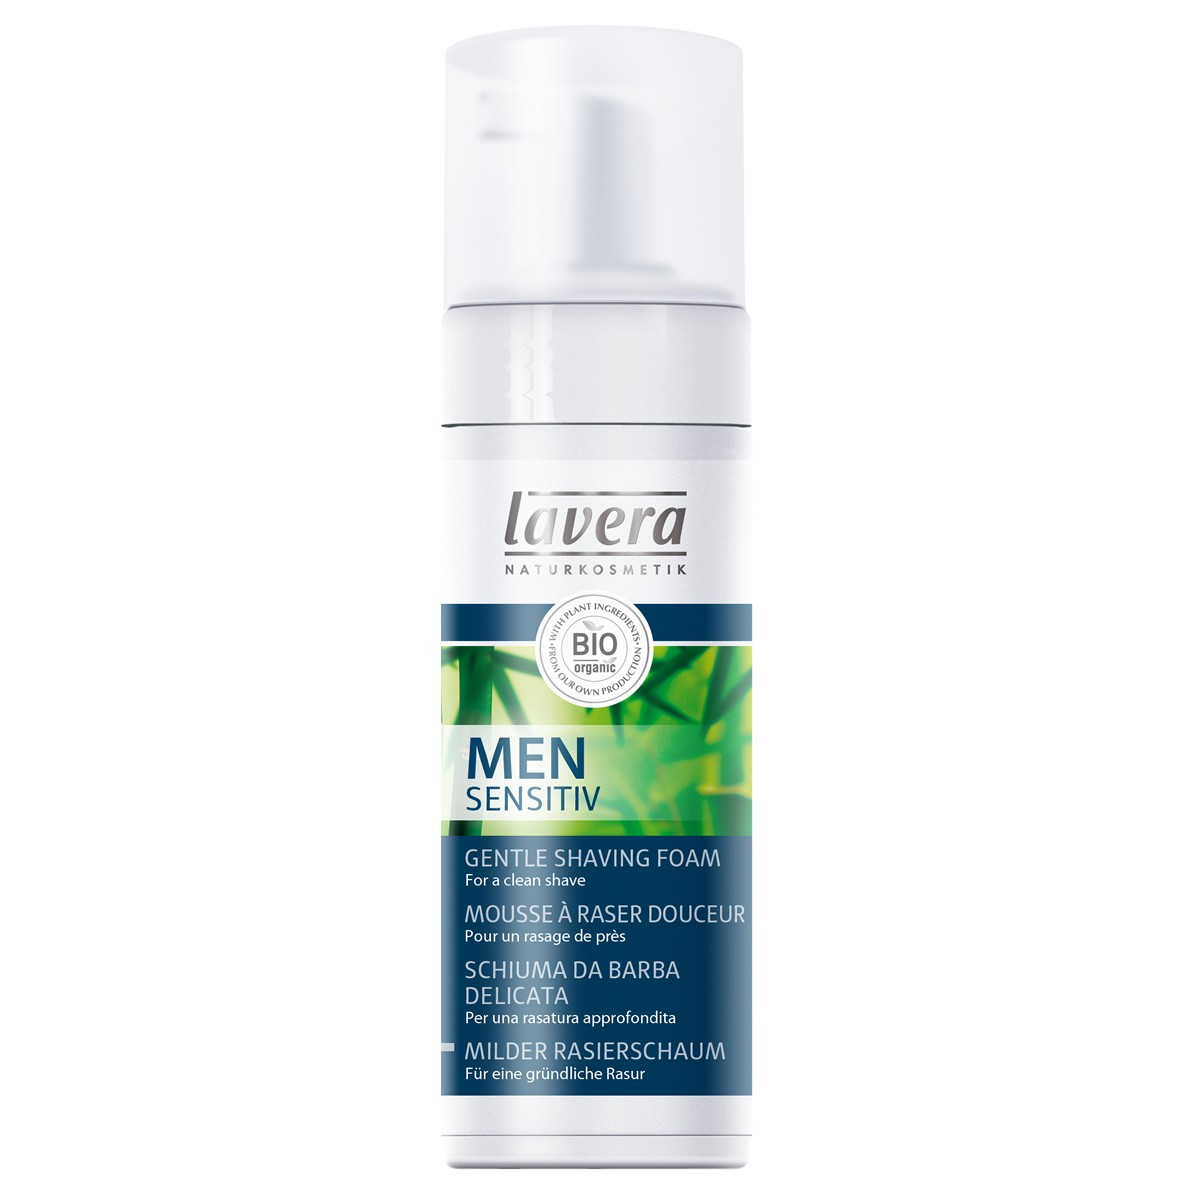 Lavera Men Sensitiv Organic Gentle Shaving Foam